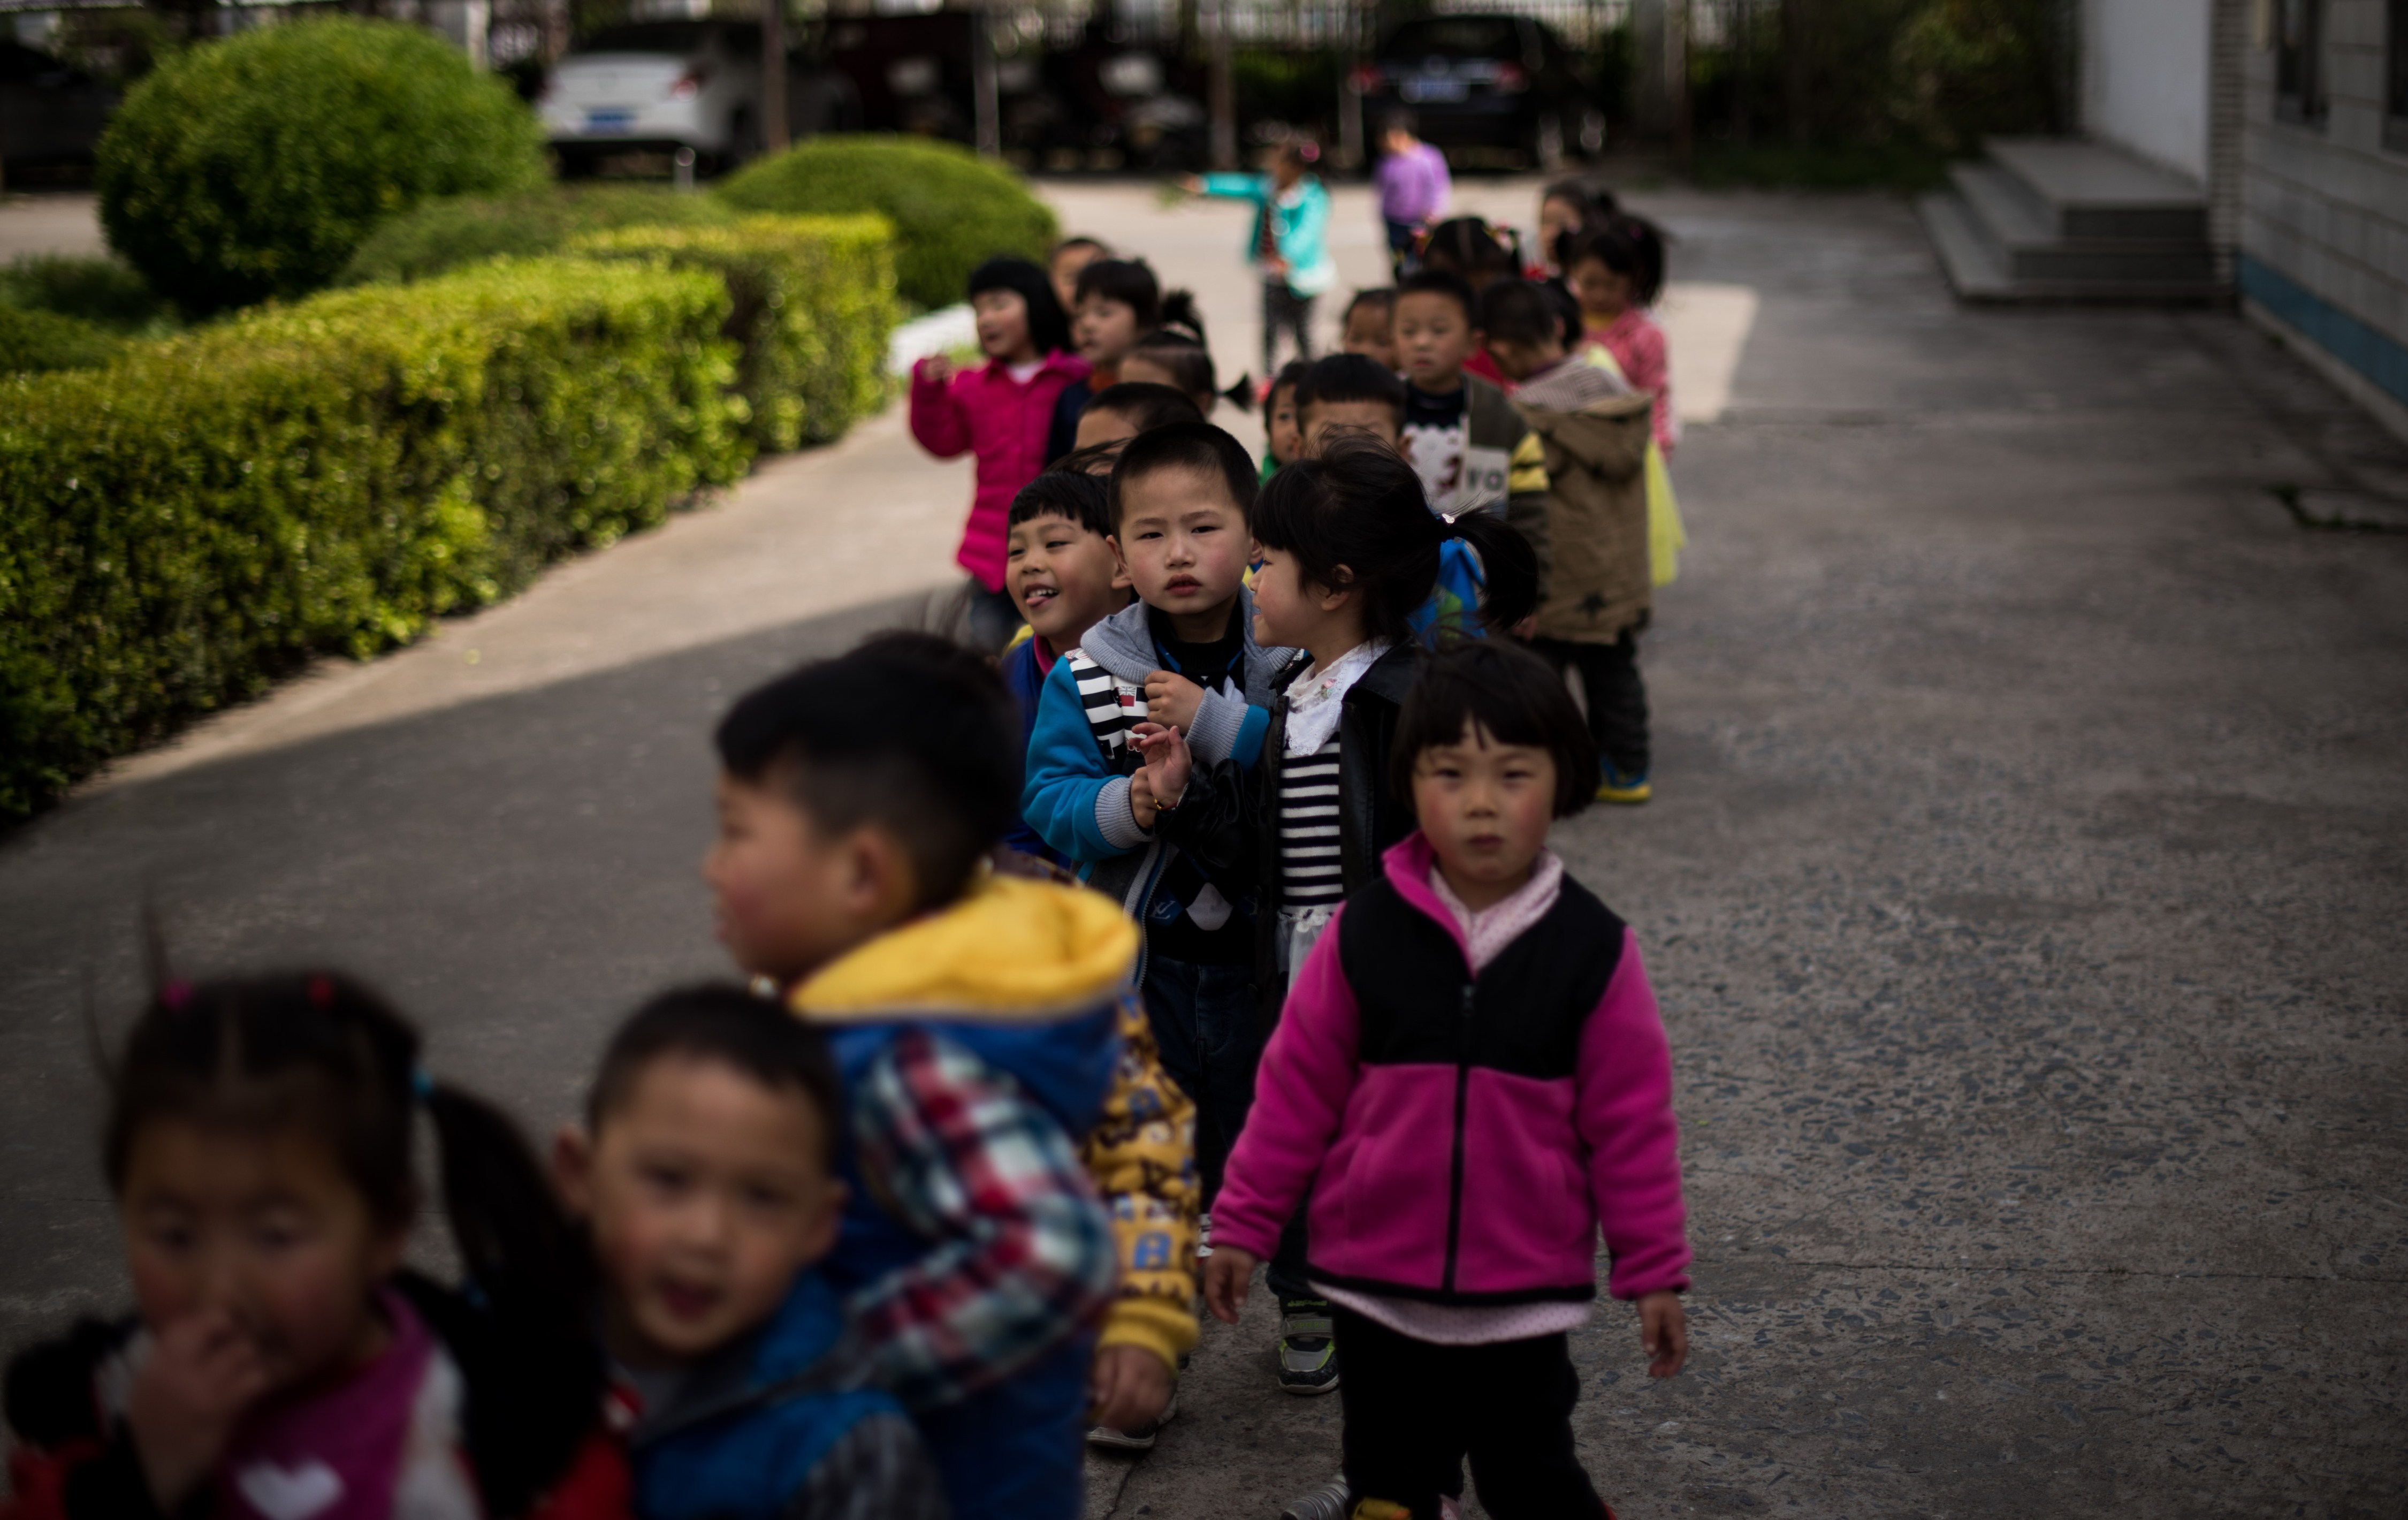 China's Two-Child Policy: Coercive Population Control Continues